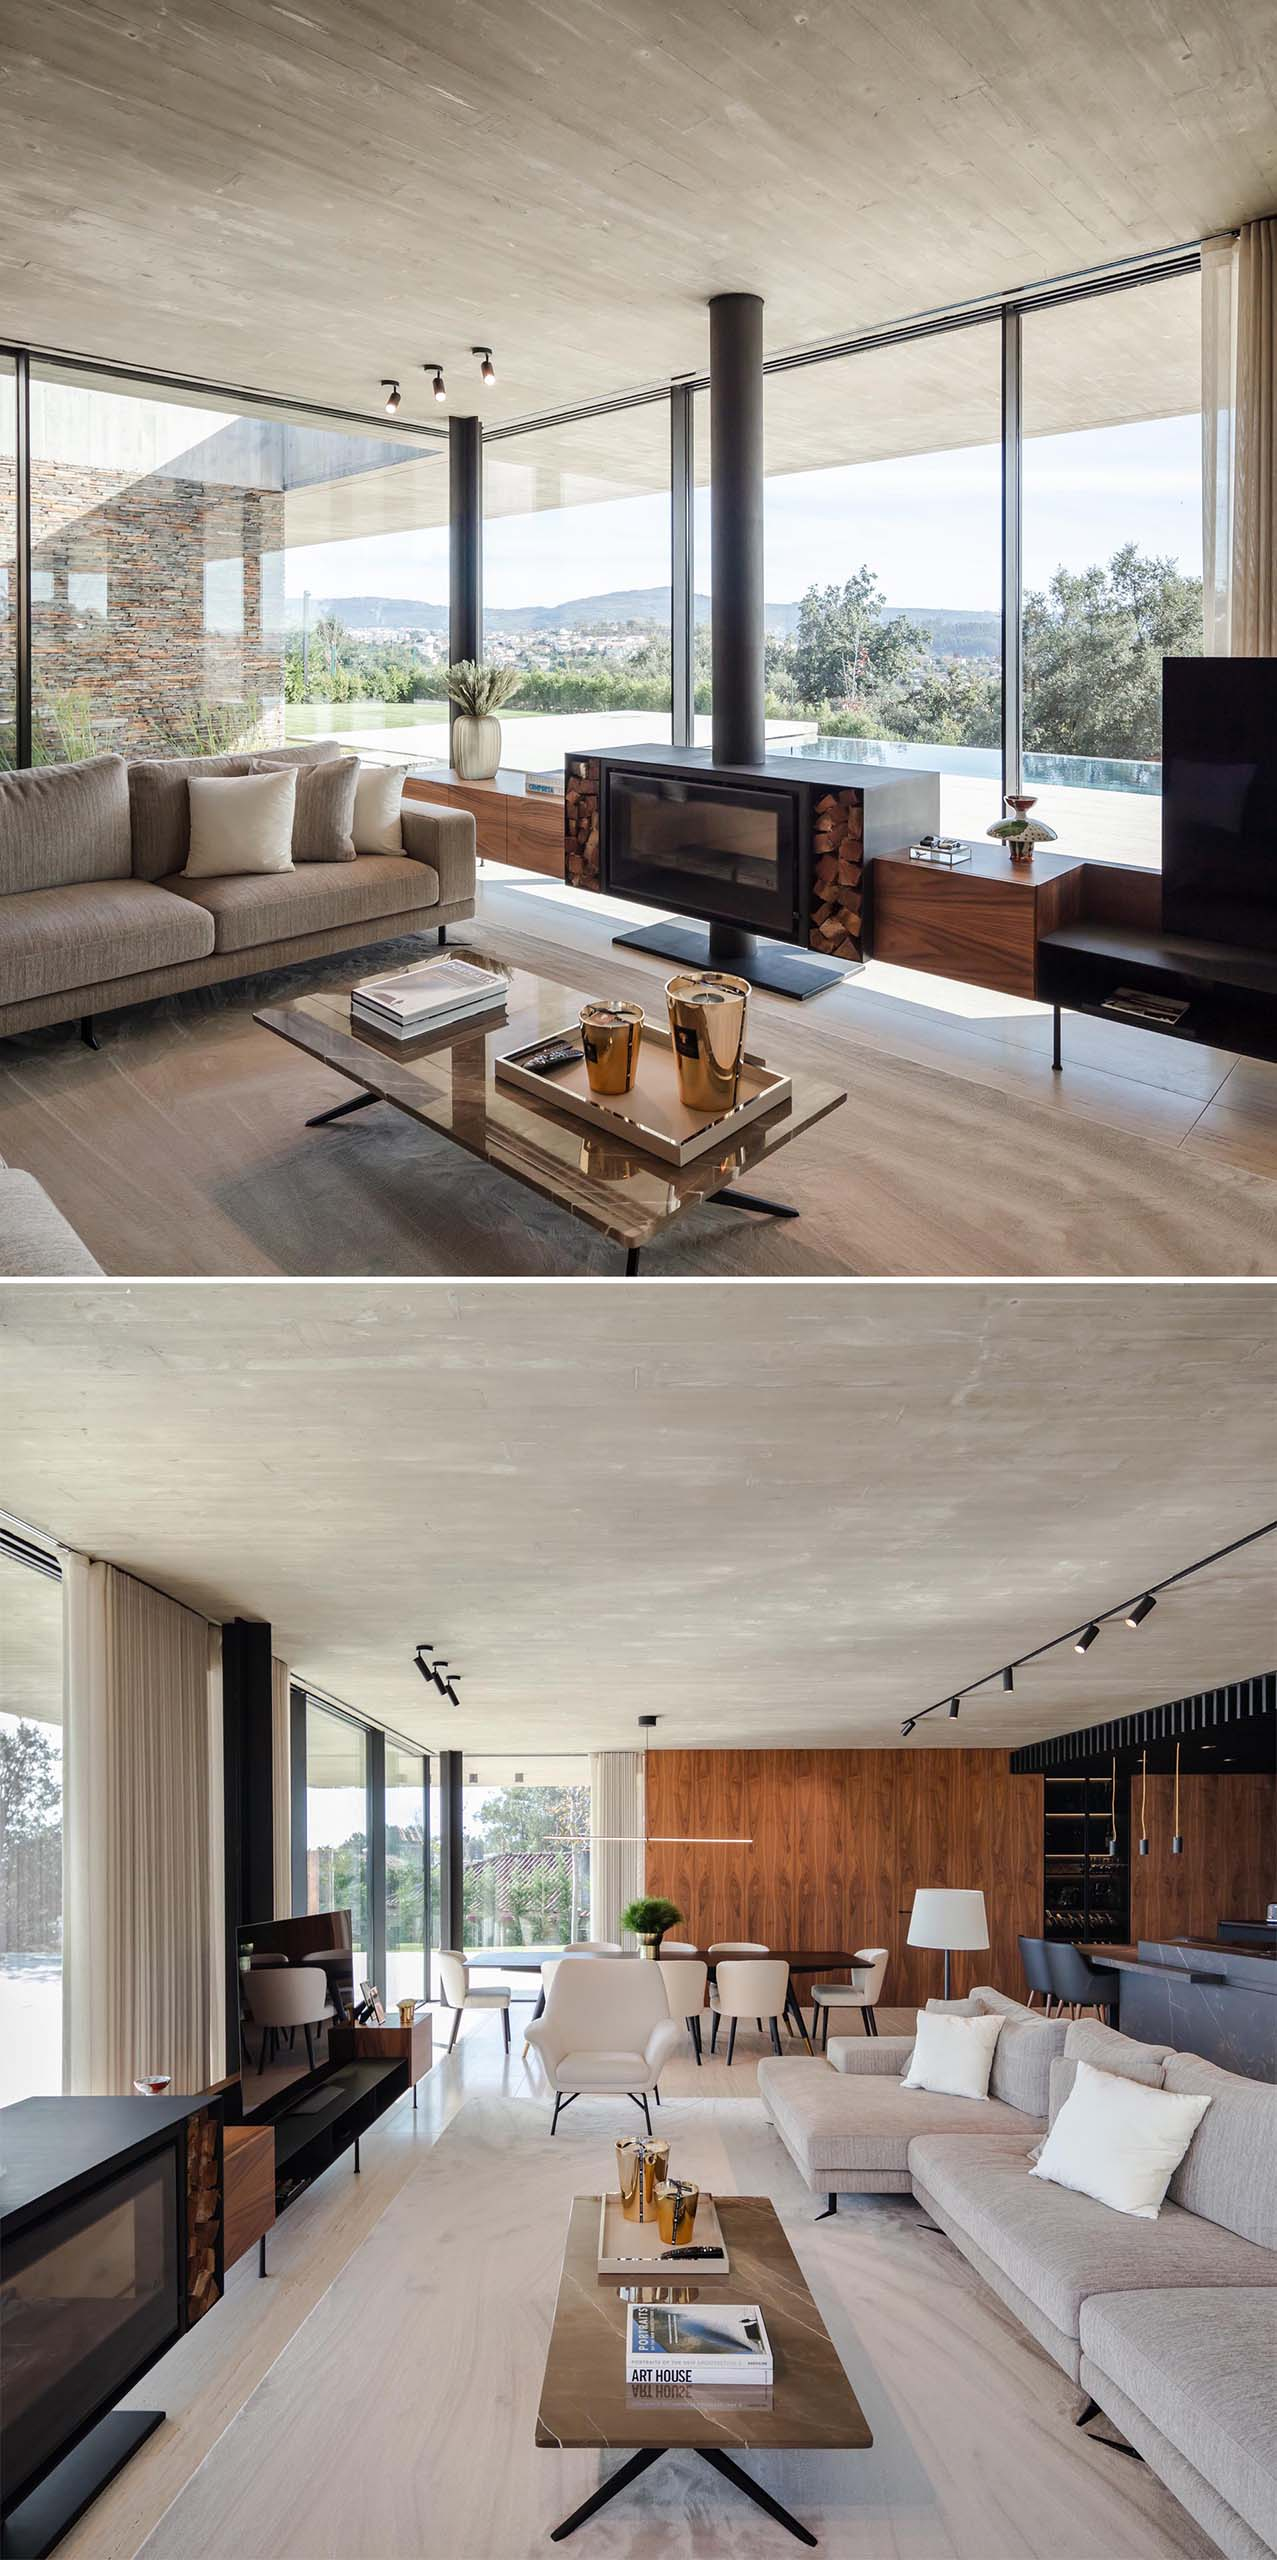 In this modern living room, there's a custom designed fireplace and television stand with wood storage and shelving.